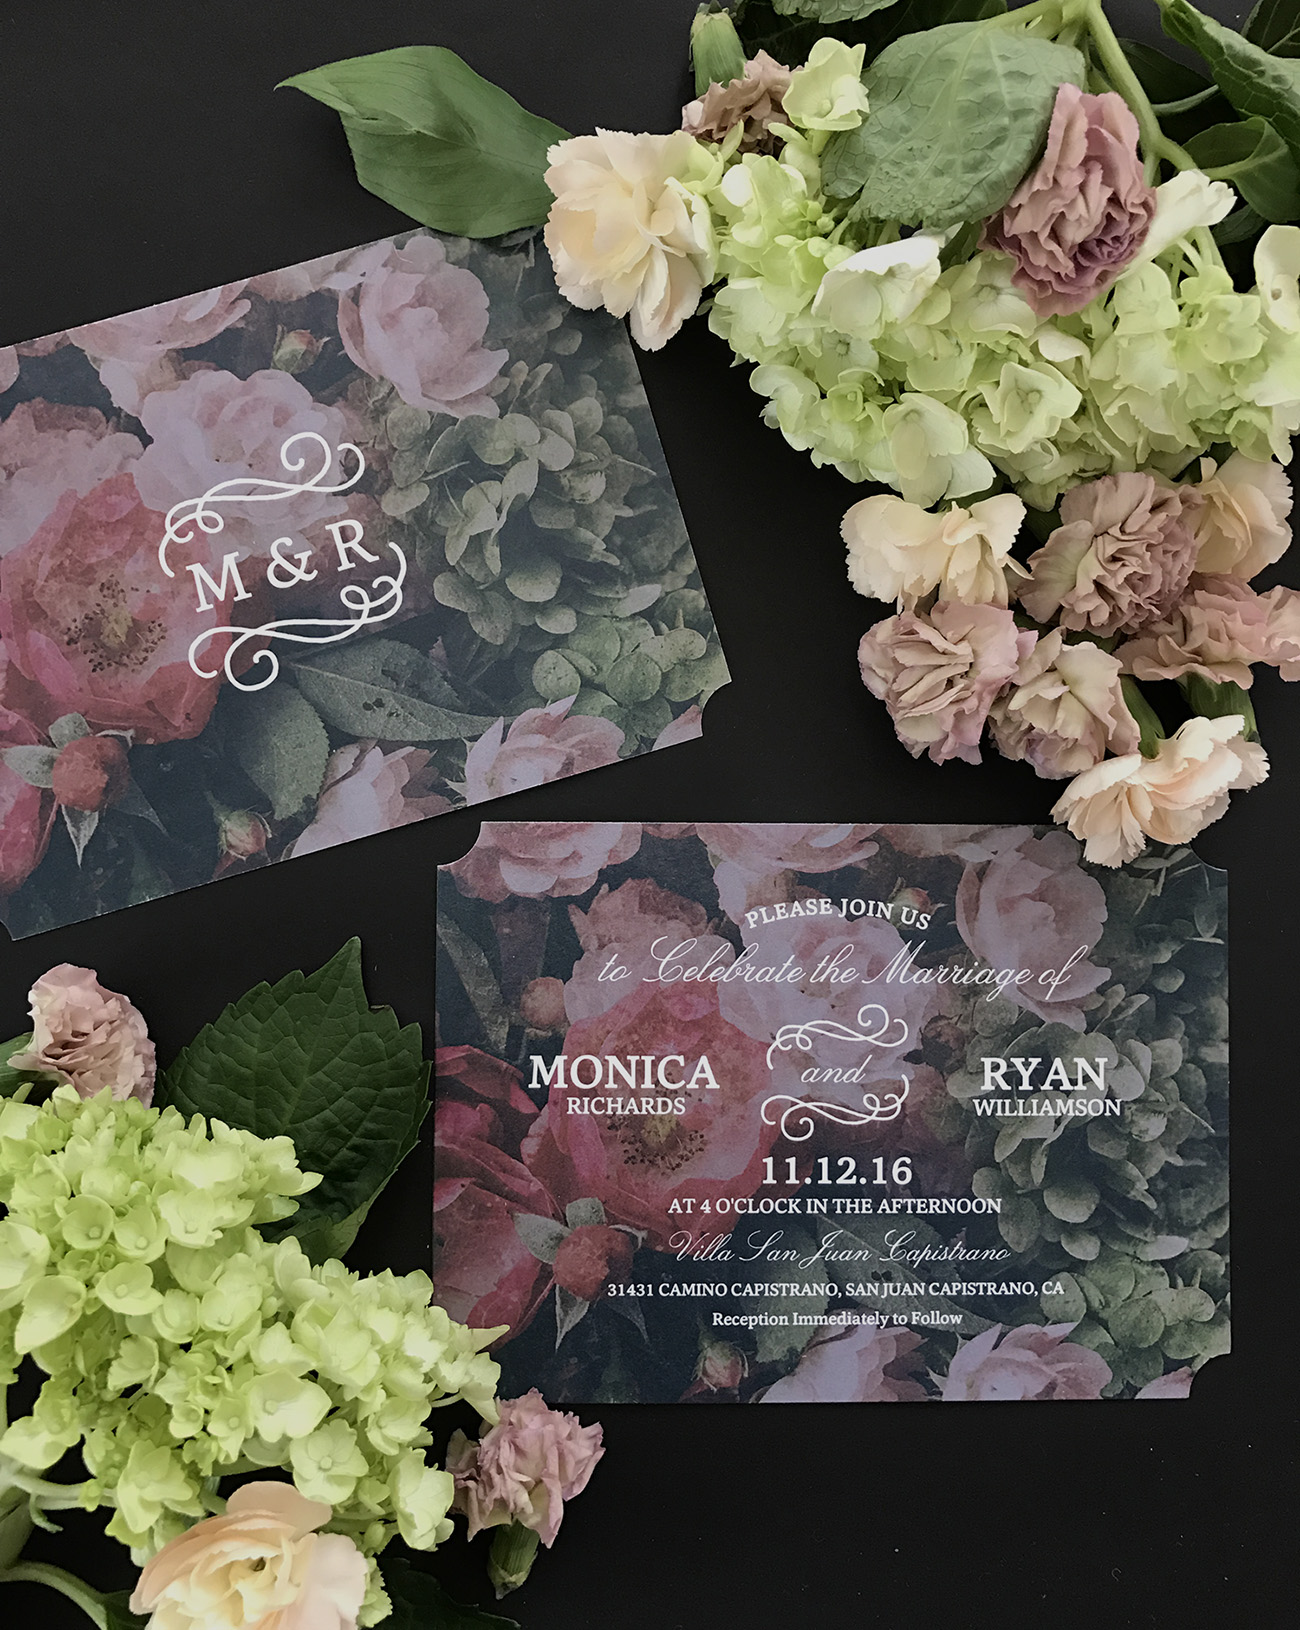 customizable wedding invitations  save the dates from shutterfly, invitation samples